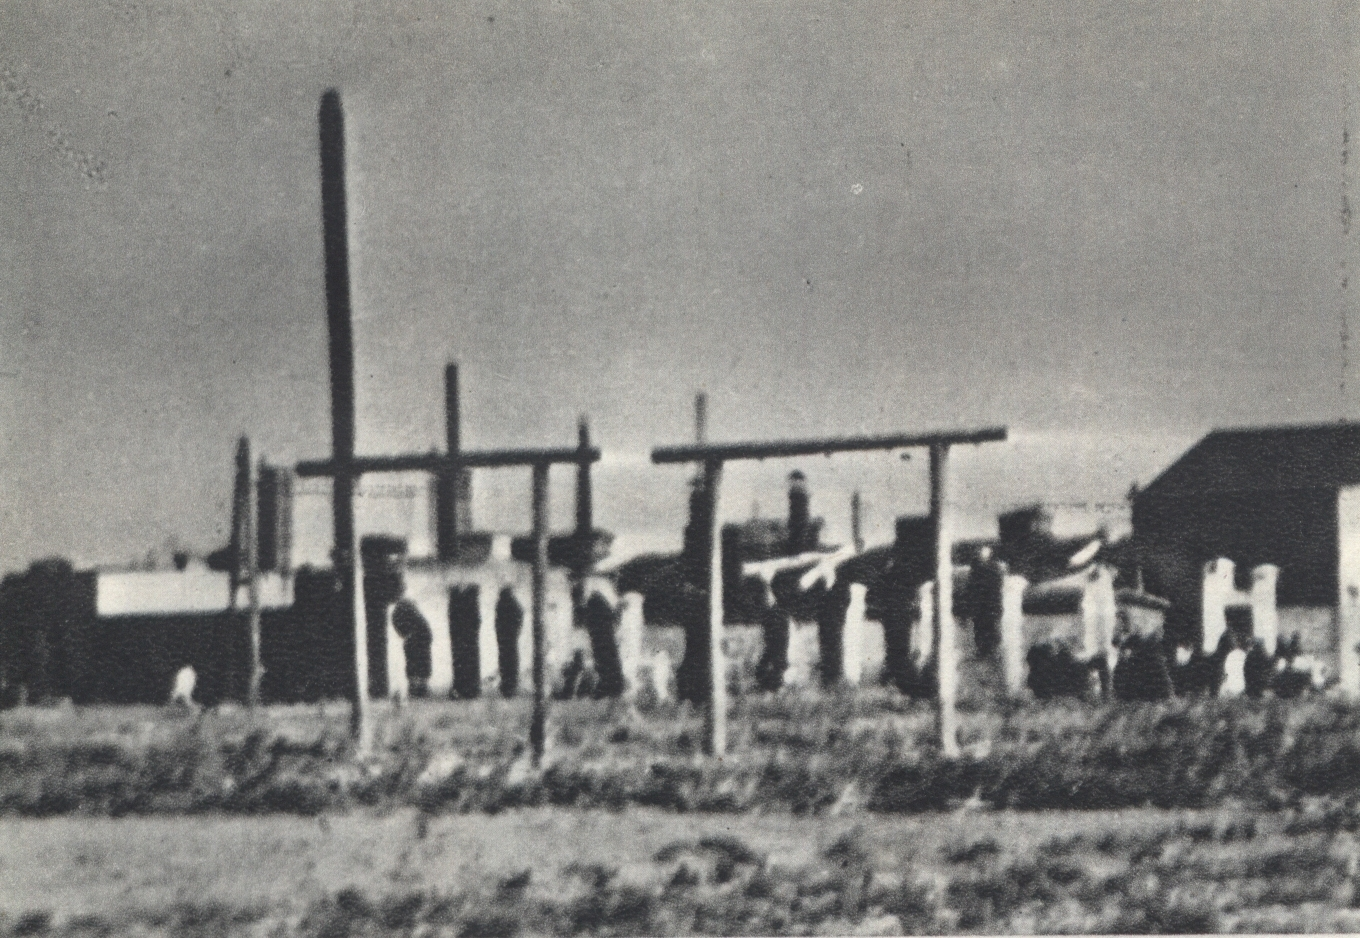 Polish_hostages_hanged_at_Mszczonowska_S